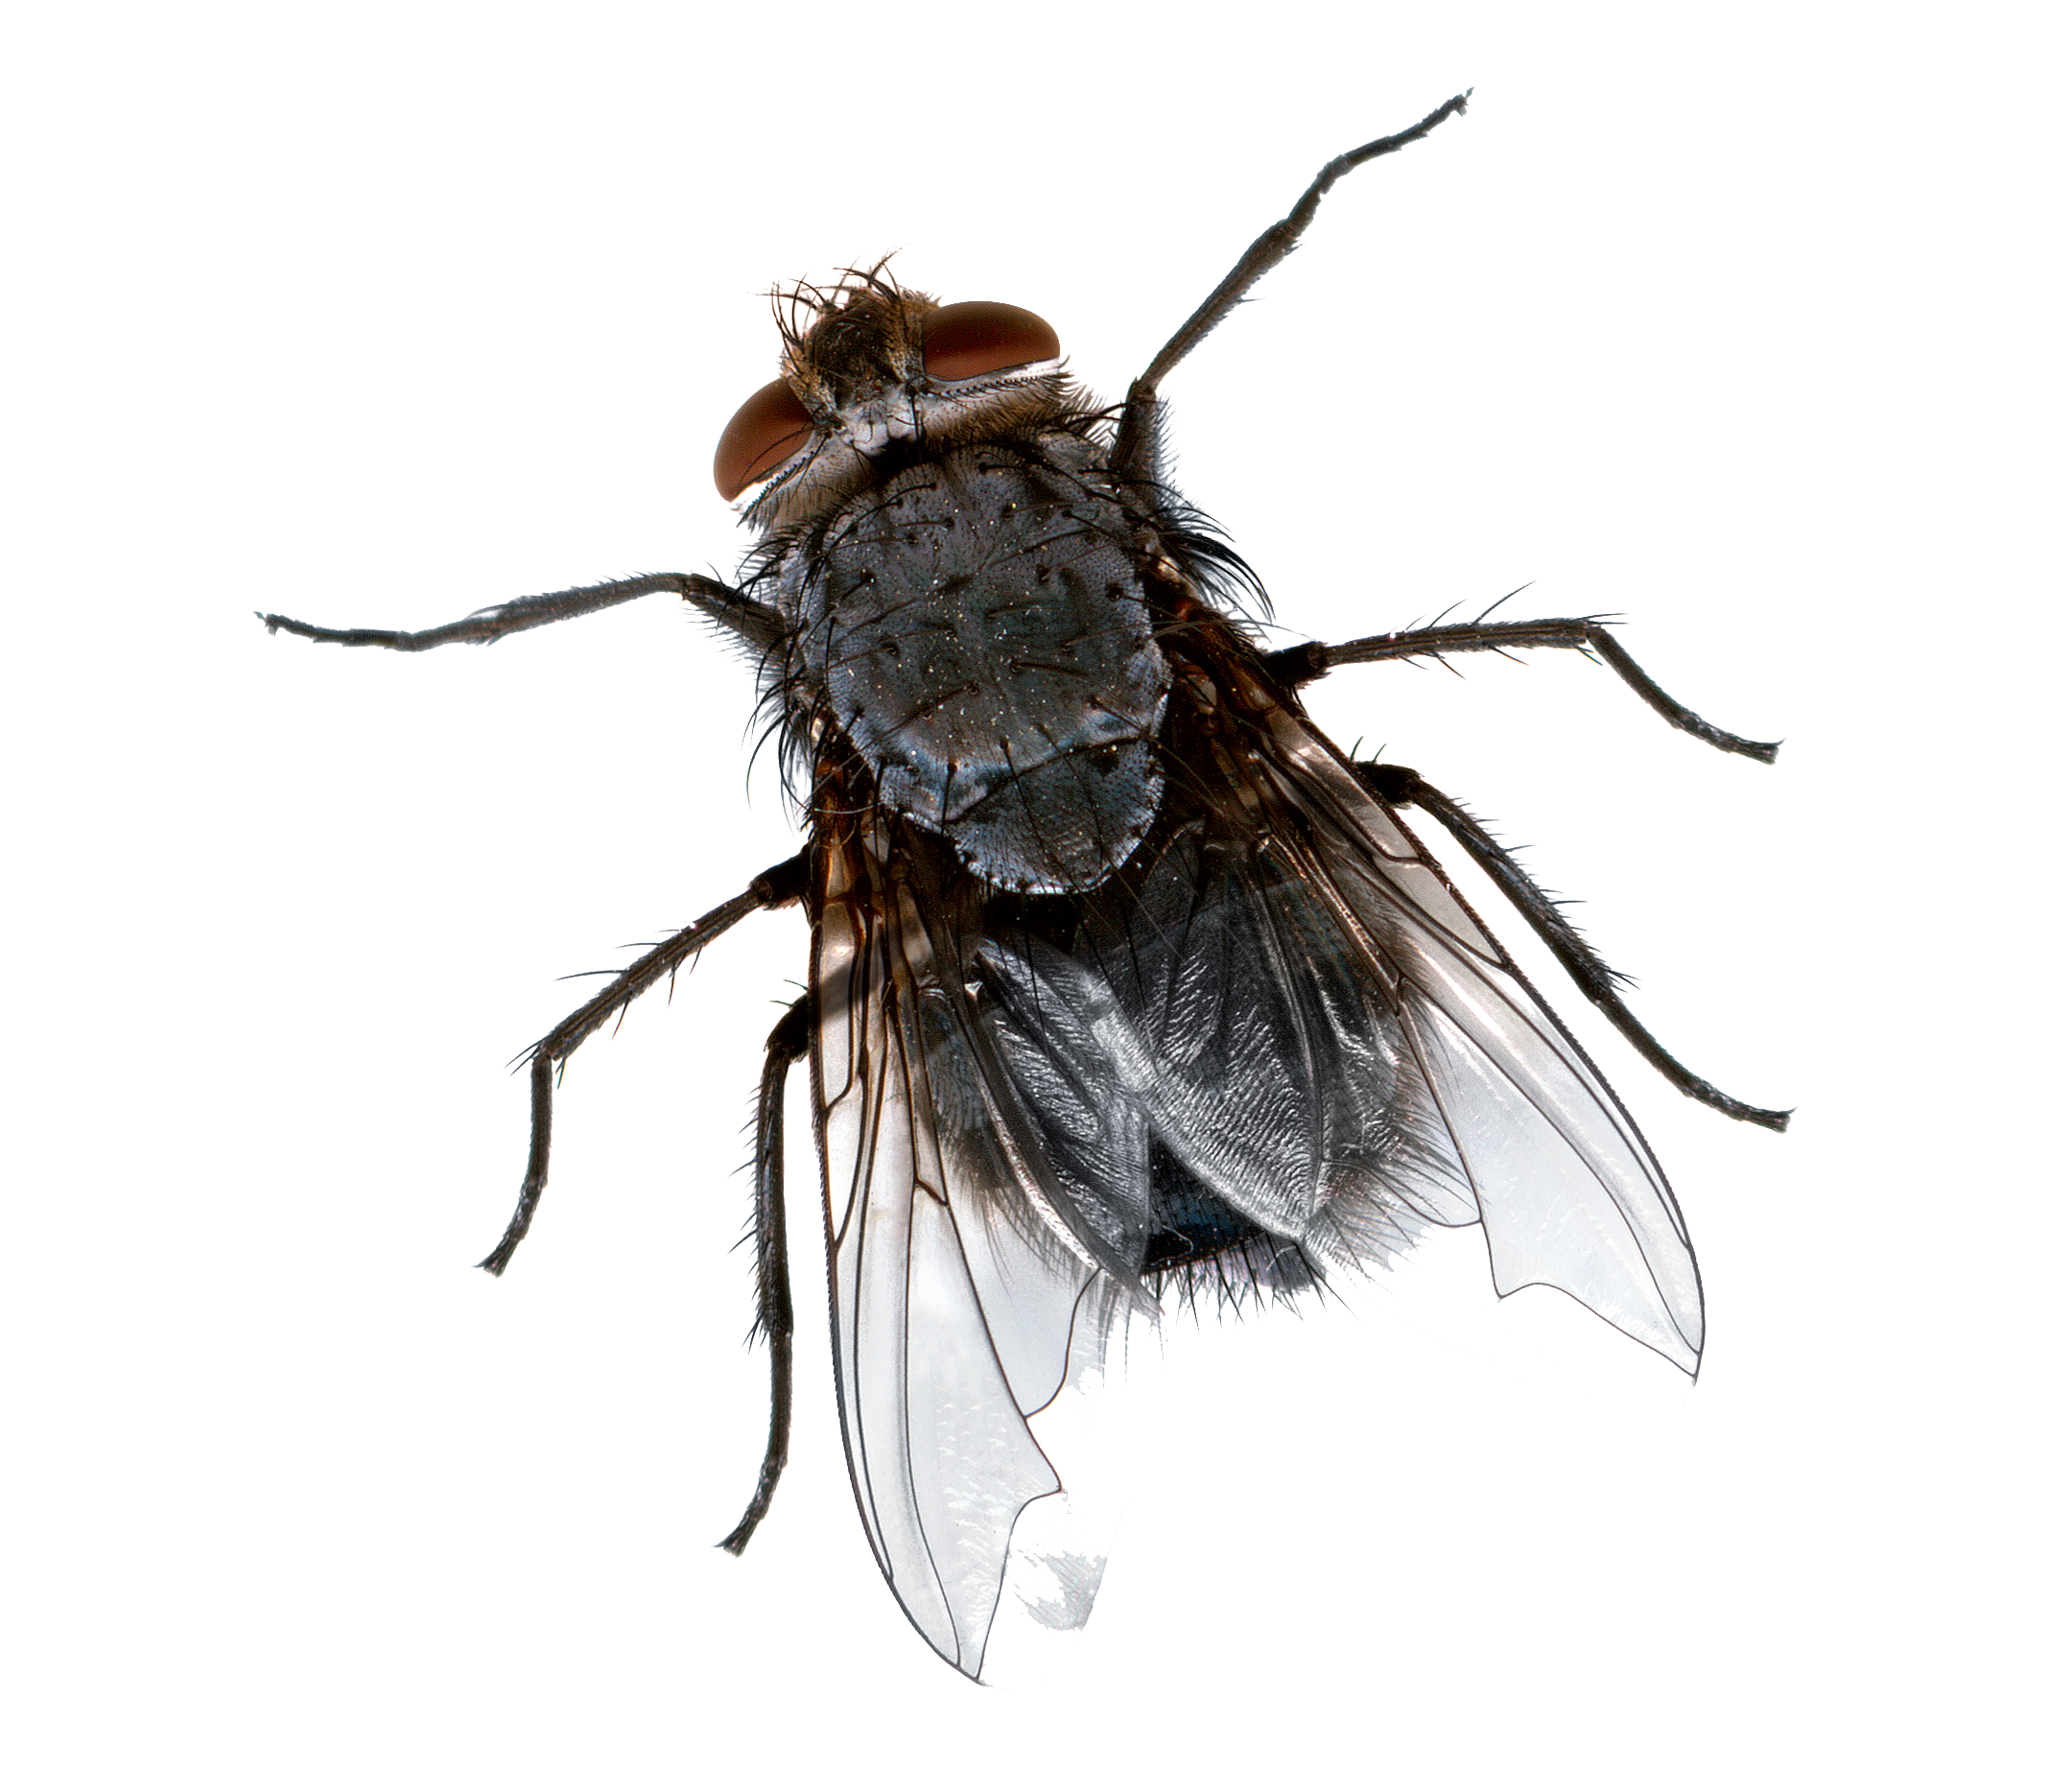 Flies Transparent Background - Fly HD PNG